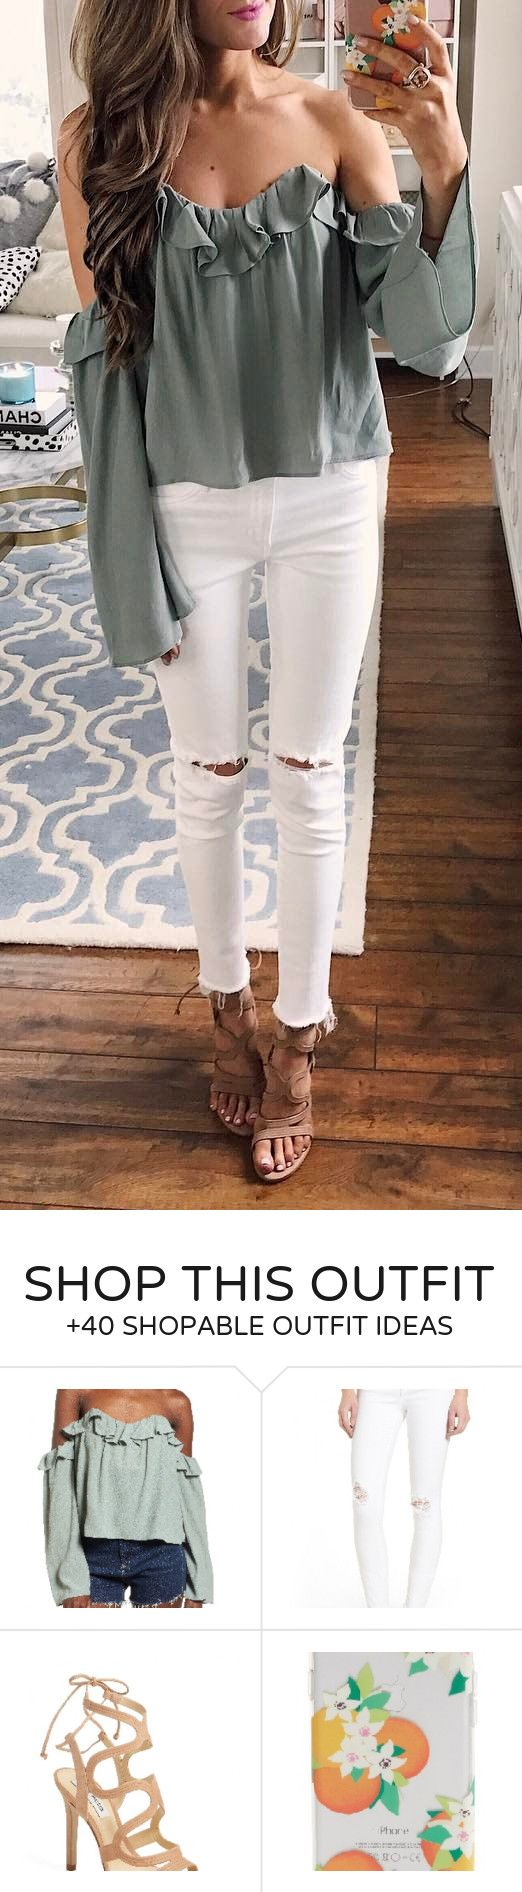 #spring #outfits Khaki Off The Shoulder Blouse + White Ripped Skinny Jeans ☺️